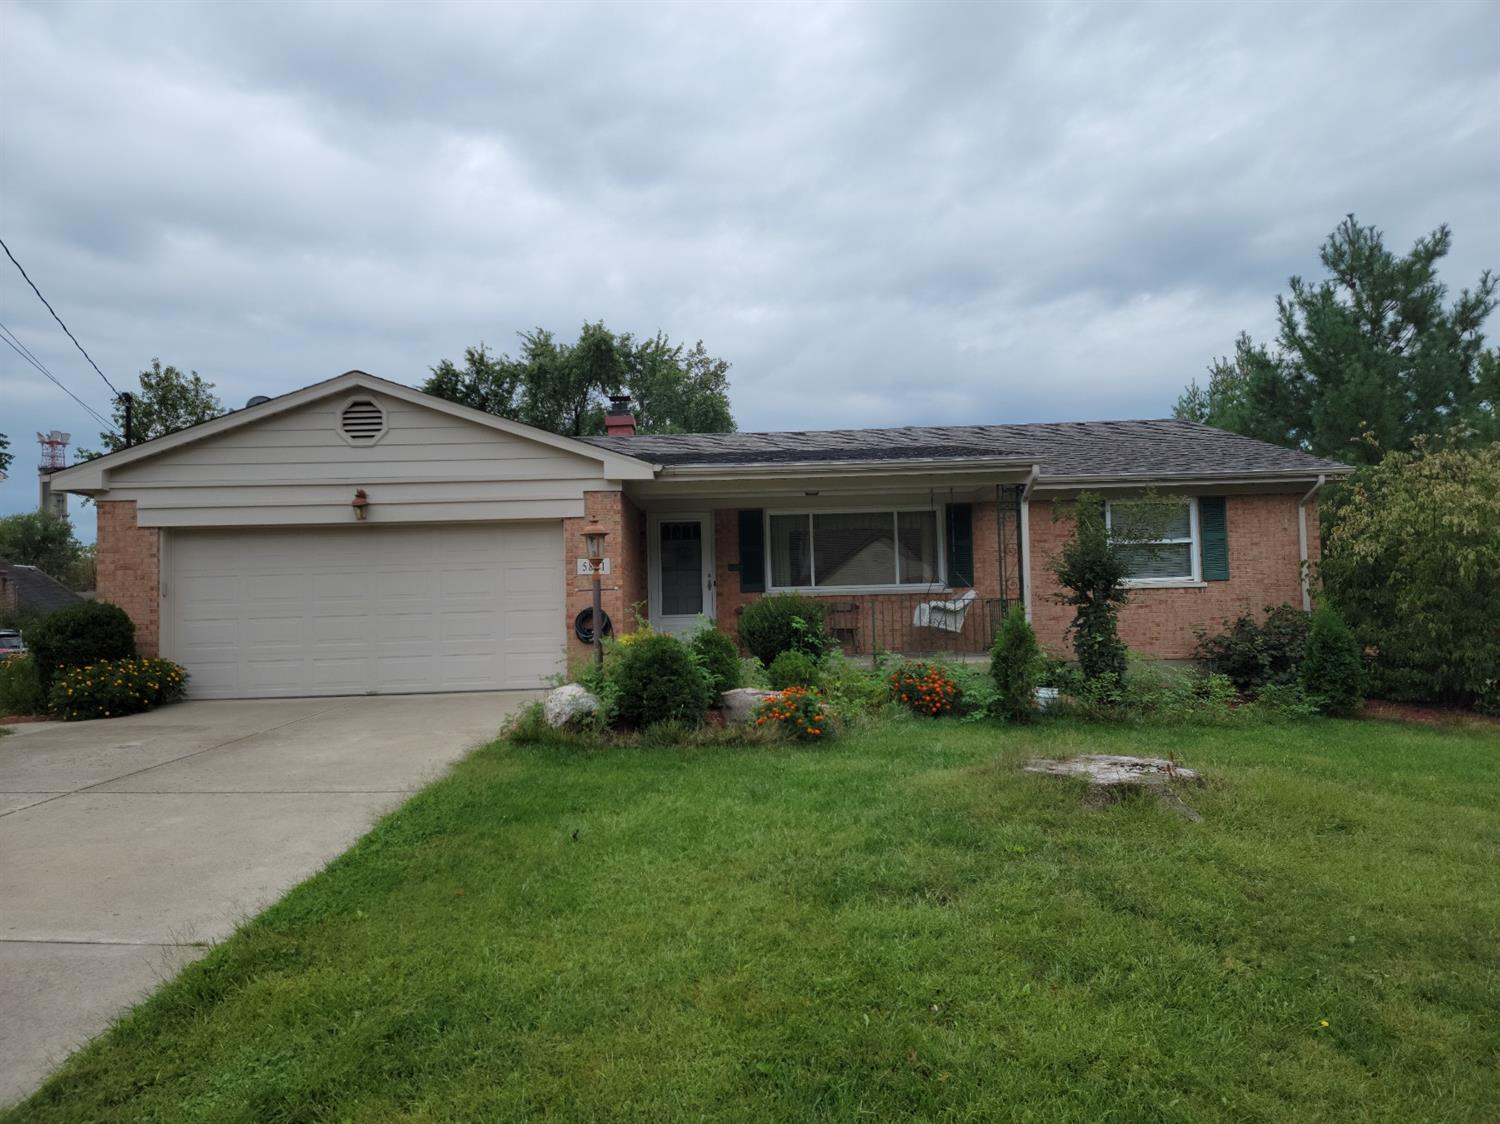 5881 Seiler Drive, Green Twp, Ohio 45239, 2 Bedrooms Bedrooms, 5 Rooms Rooms,2 BathroomsBathrooms,Single Family Residence,For Sale,Seiler,1716438